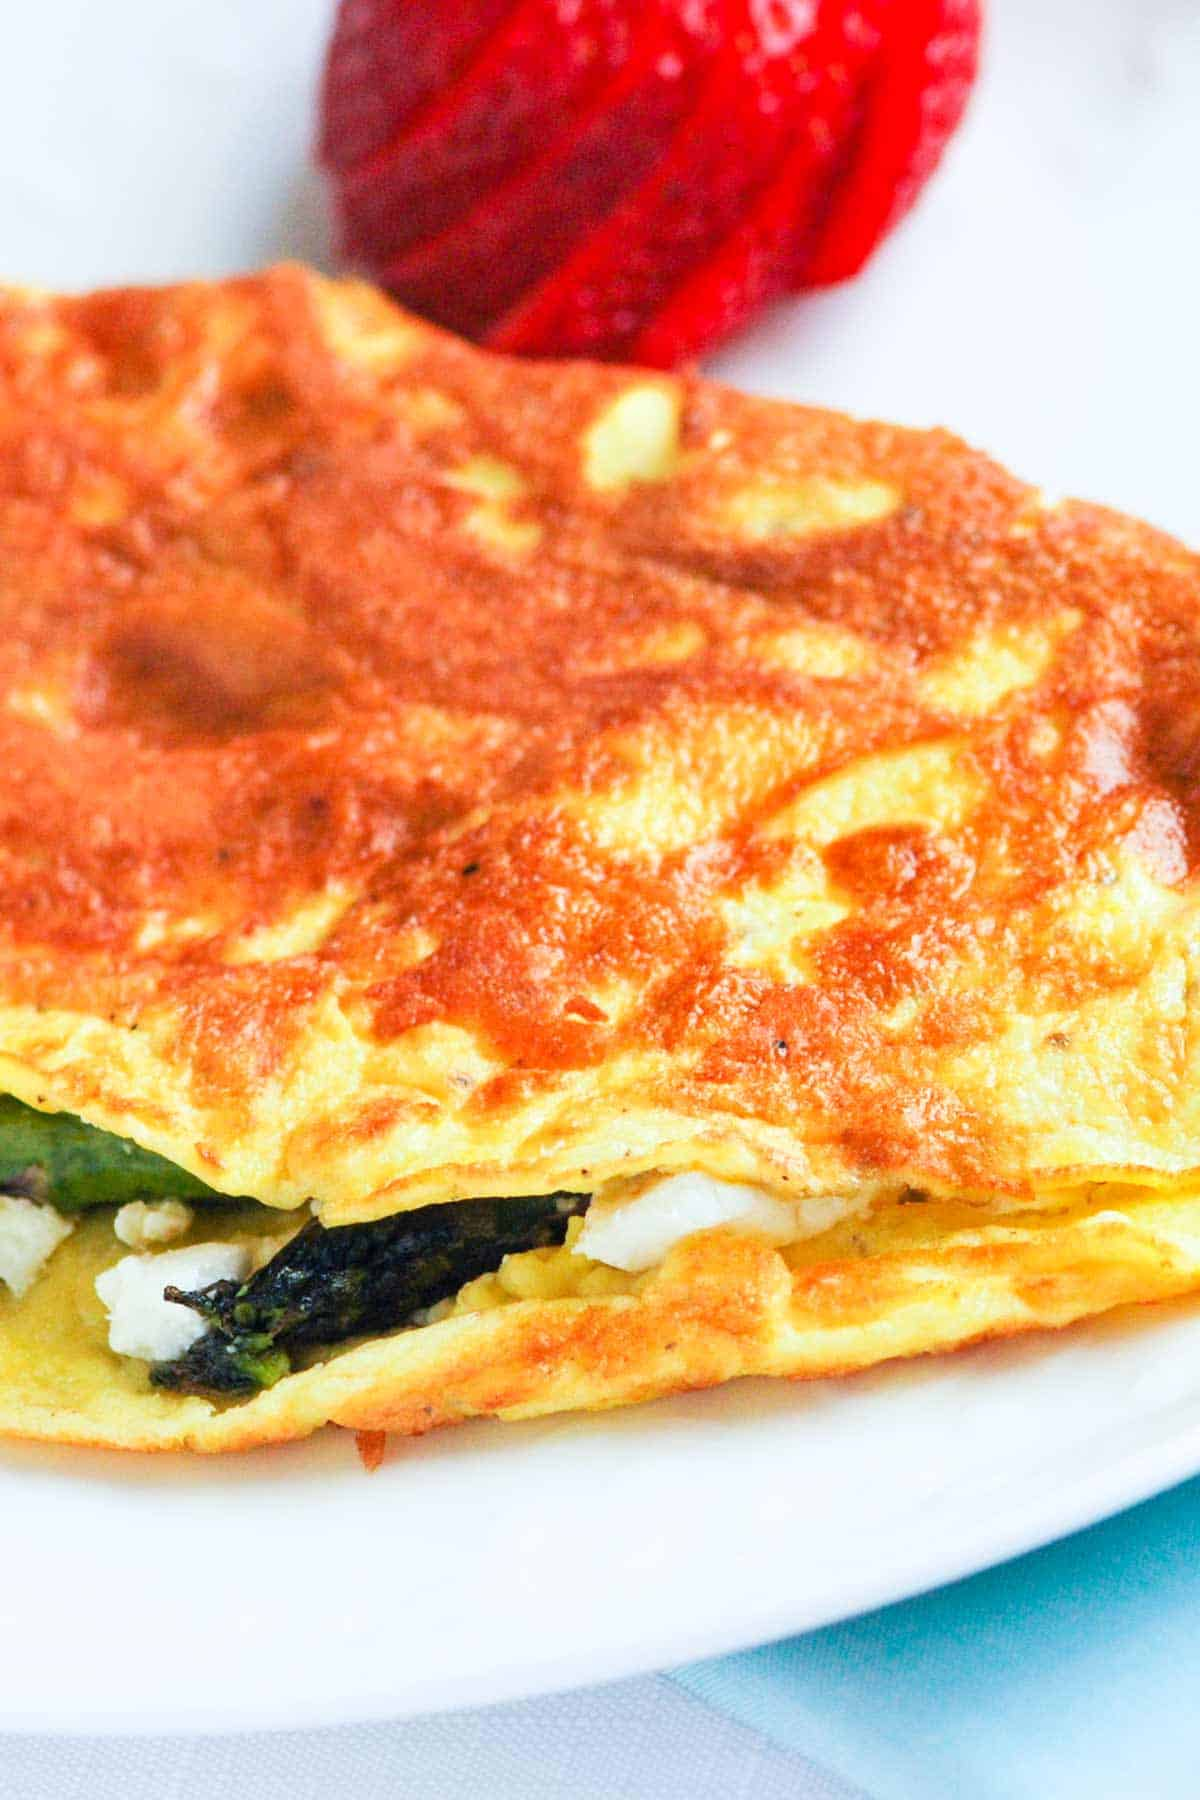 How to make an omelet with asparagus and goat cheese